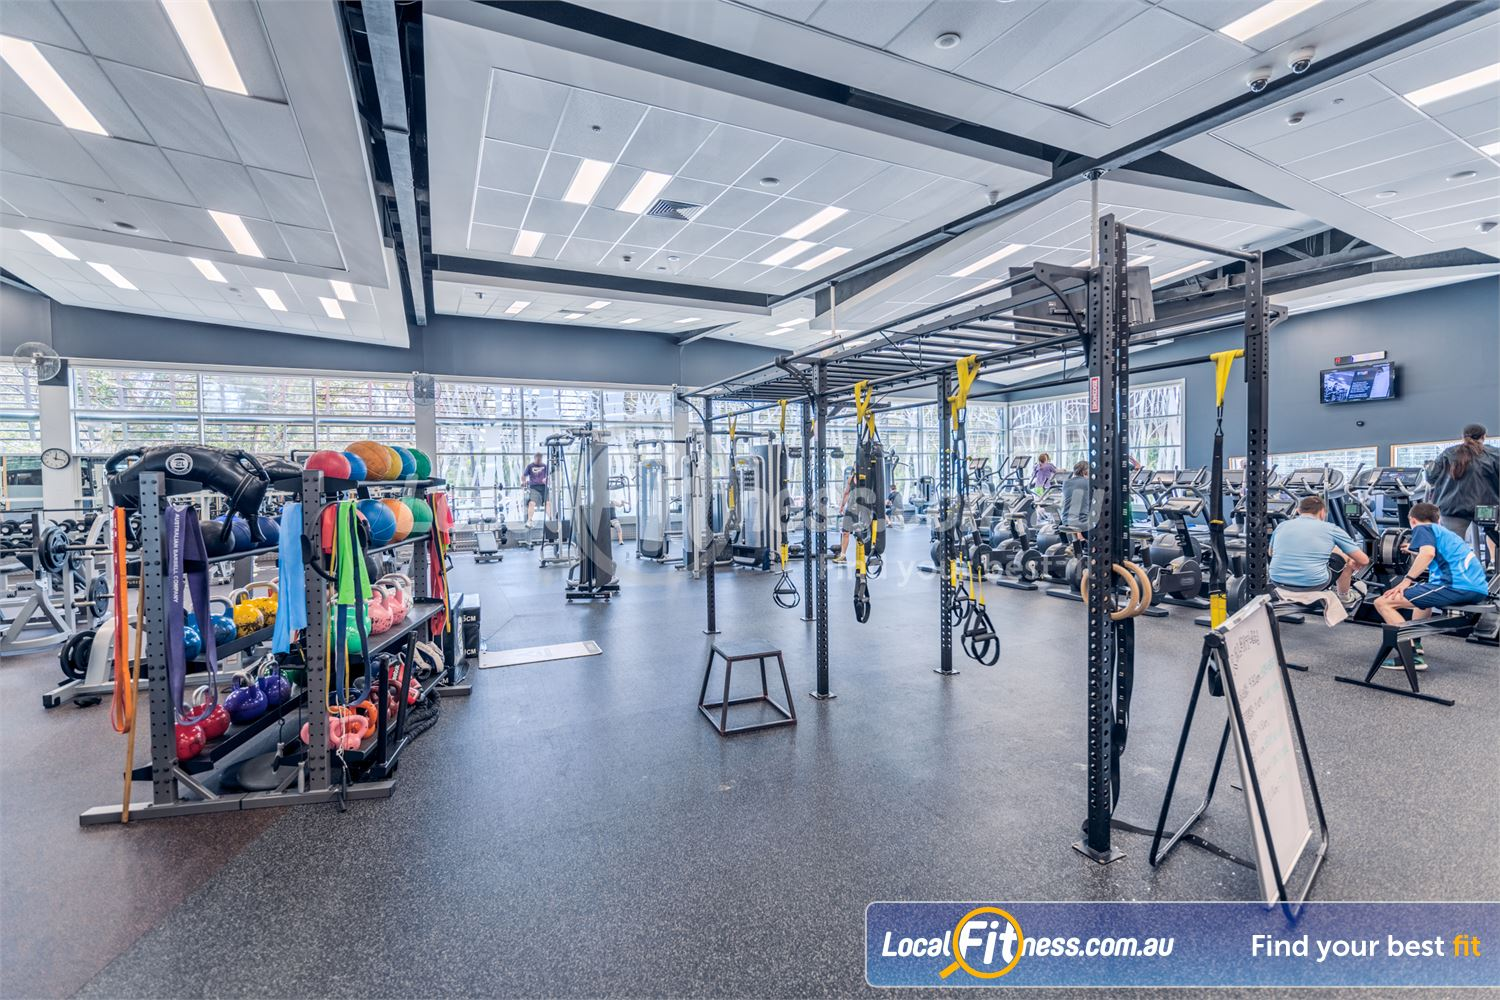 Eltham Leisure Centre Eltham Welcome to the Eltham Leisure Centre with 24/7 Eltham gym access.